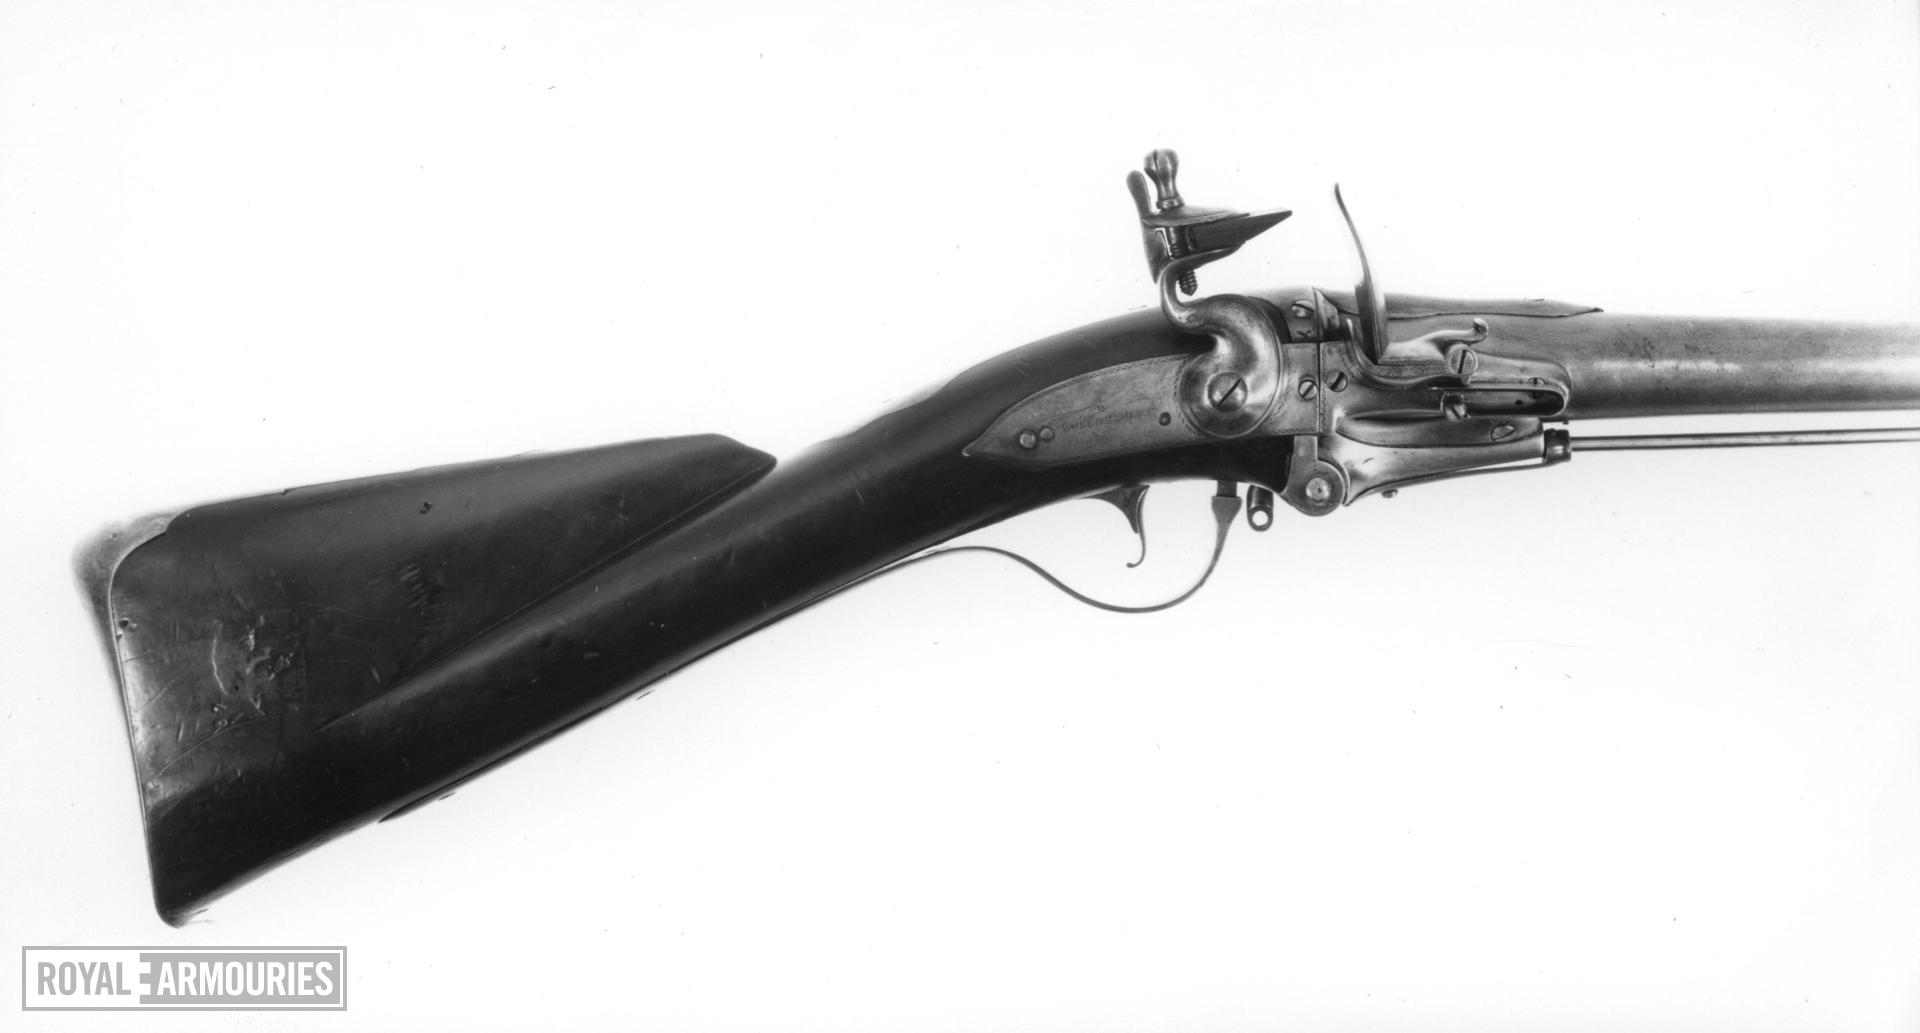 Flintlock breech-loading military musket - By Richard Wooldridge